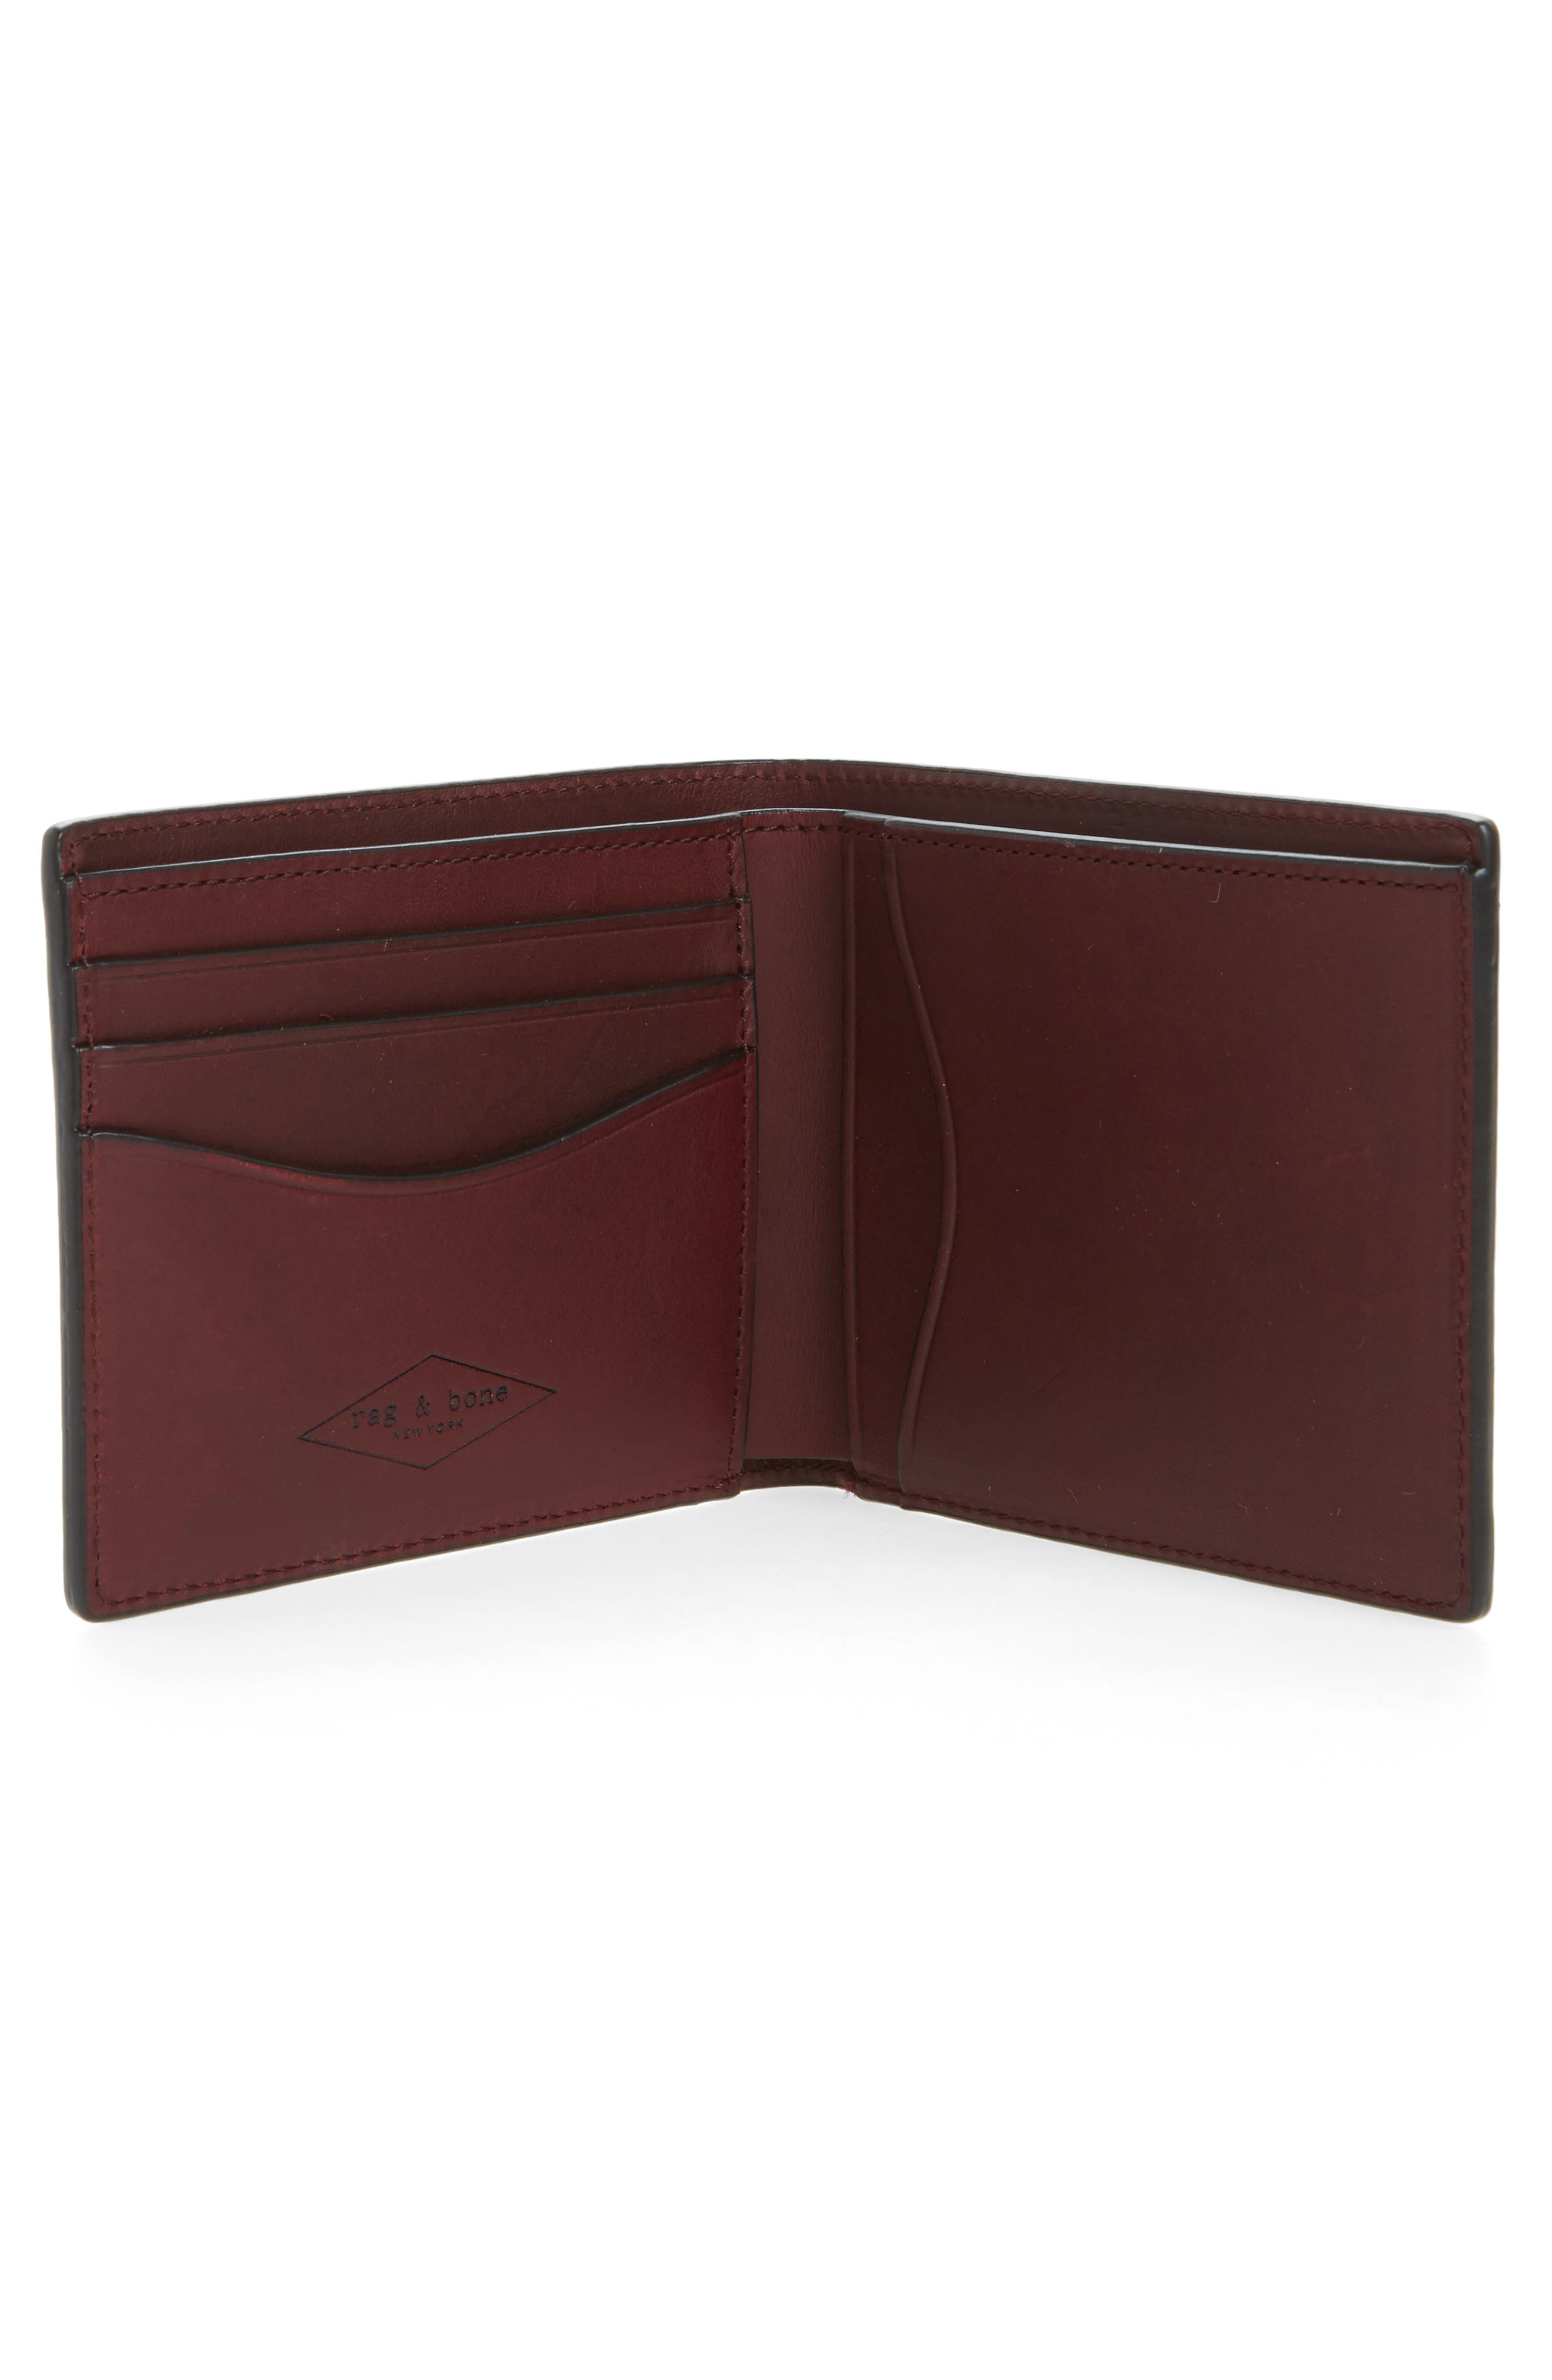 Hampshire Bifold Leather Wallet,                             Alternate thumbnail 2, color,                             998